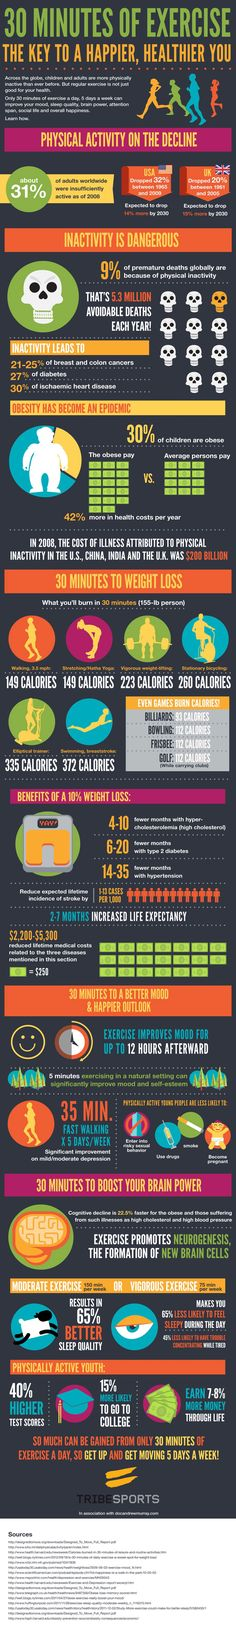 30 Minutes Of Exercise Infographic http://miricbiotechltd.tumblr.com/miric%20biotech%20ltd #miricbiotech #miricbiotechltd #miricbiotechlimited